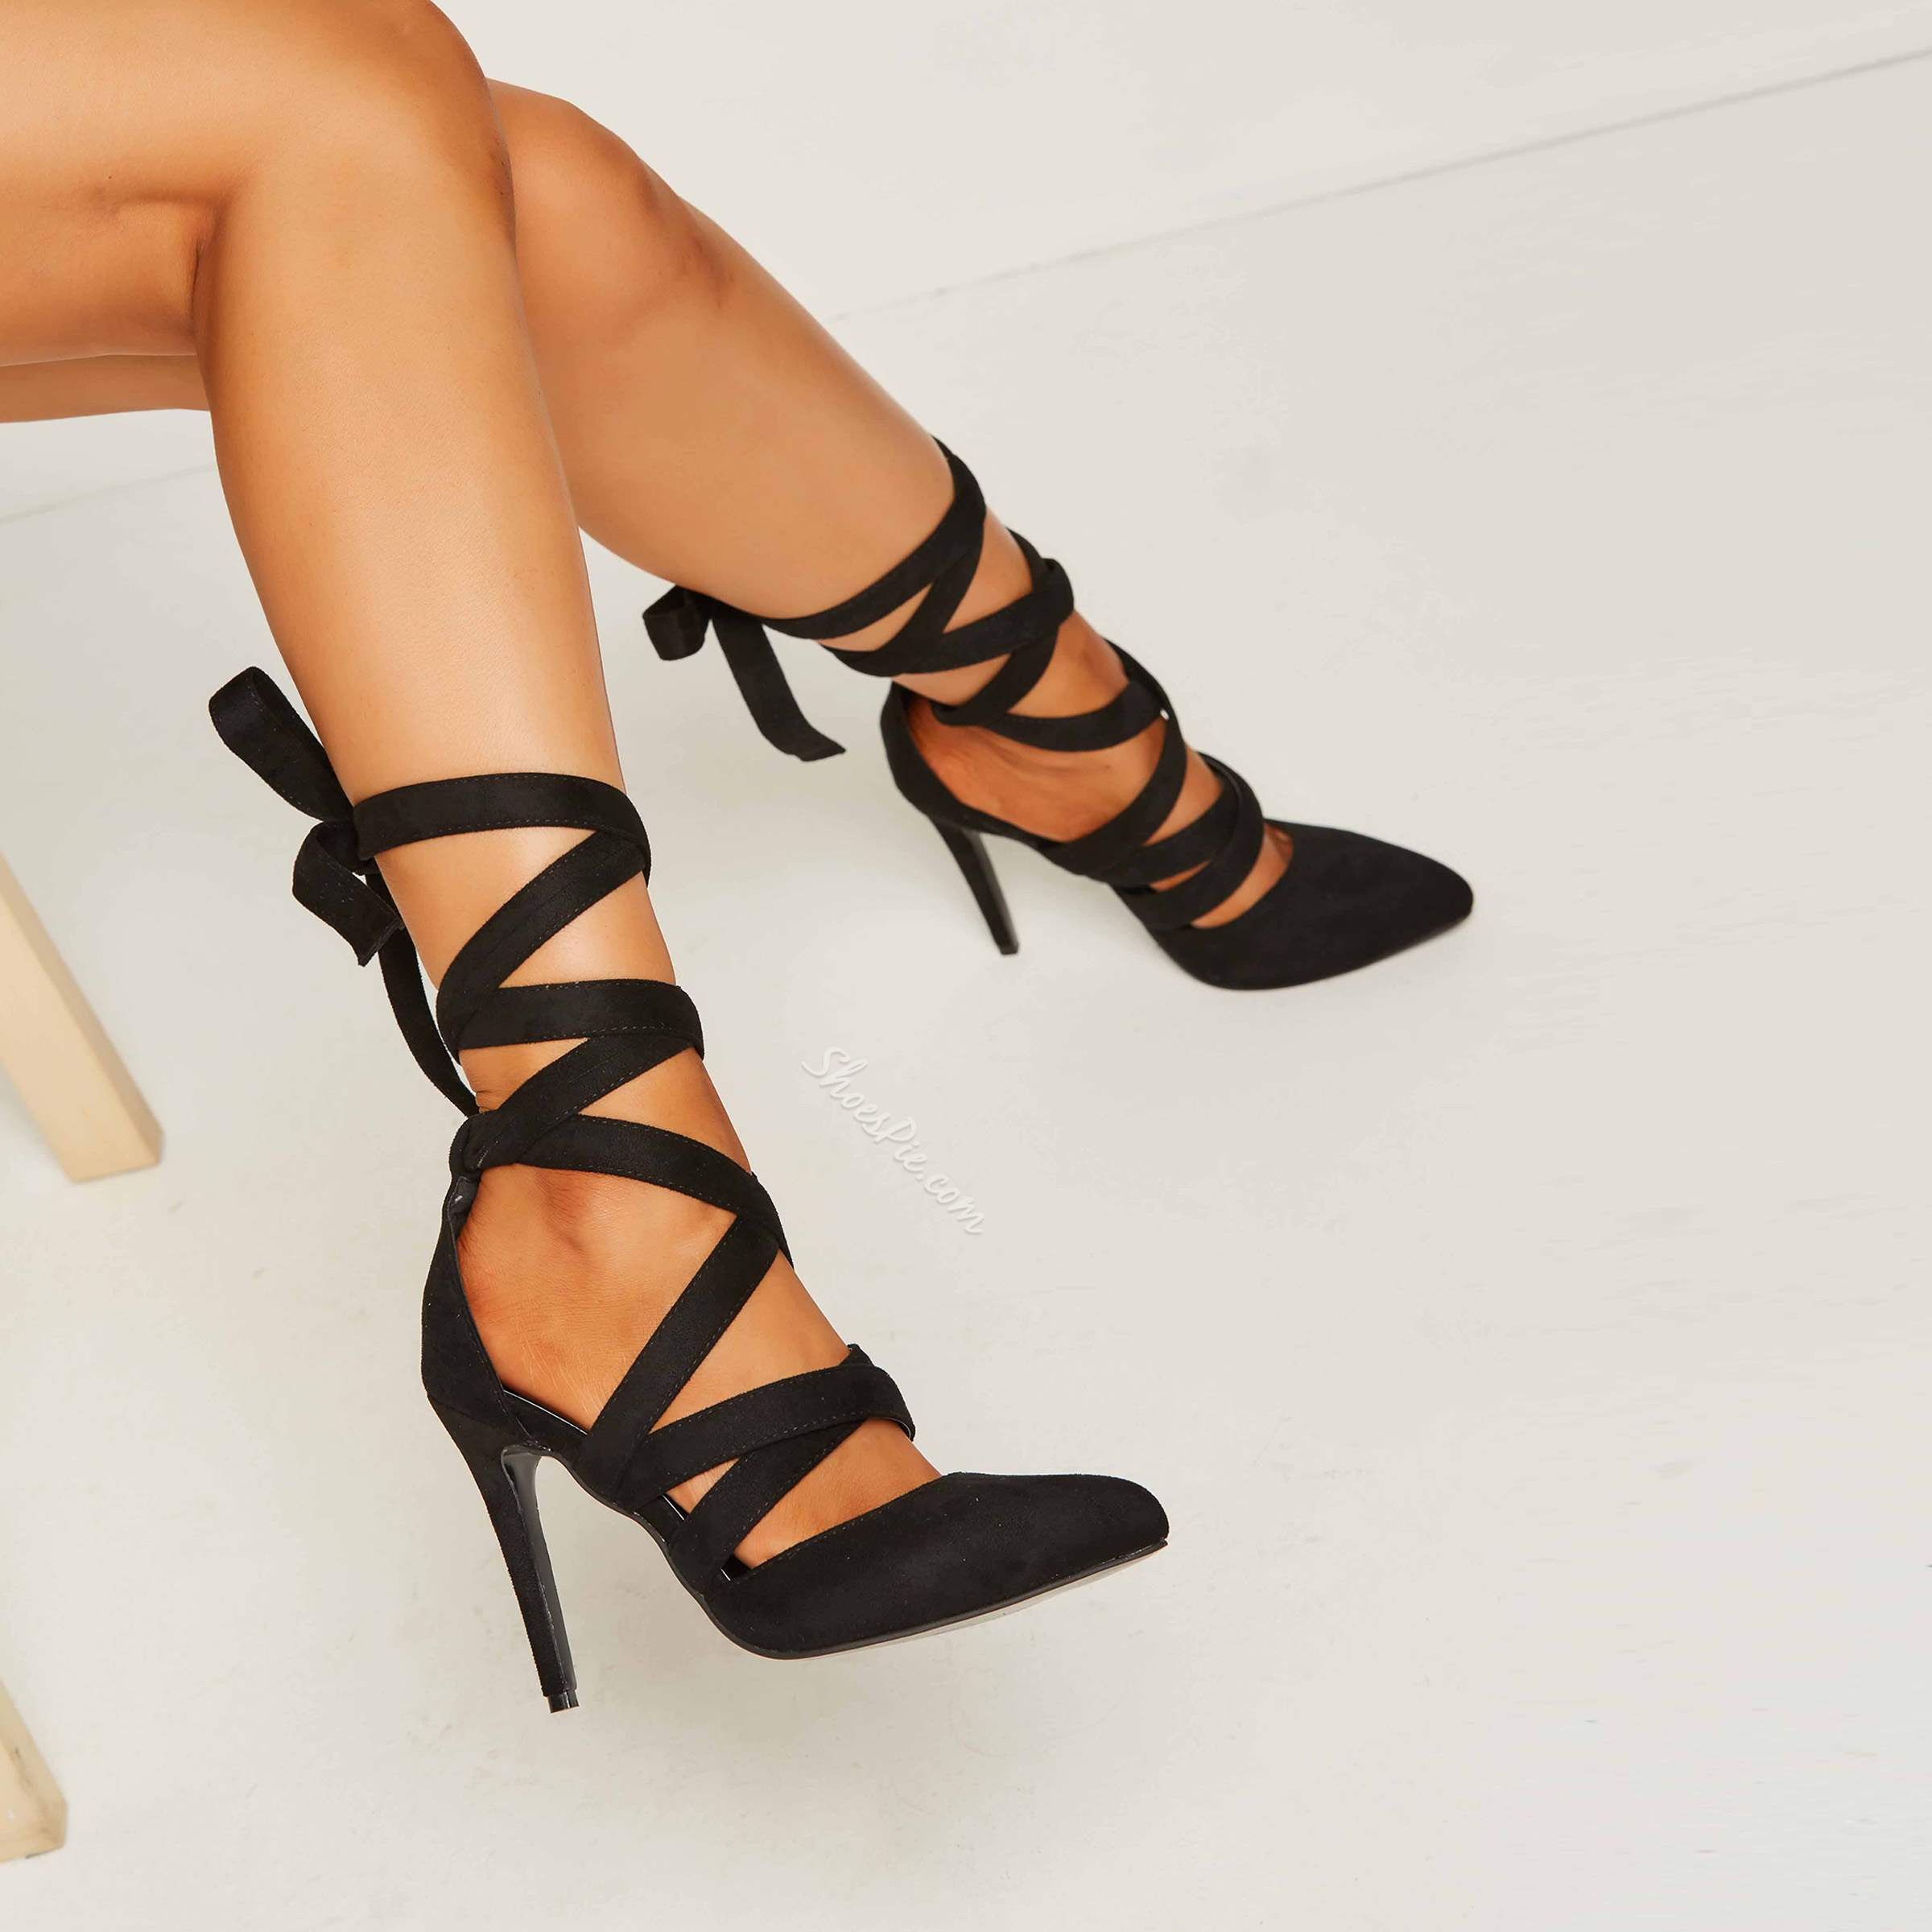 ee62a1f87595 Shoespie Date Out Black Ribbon Lace Up Stiletto Heels- Shoespie.com